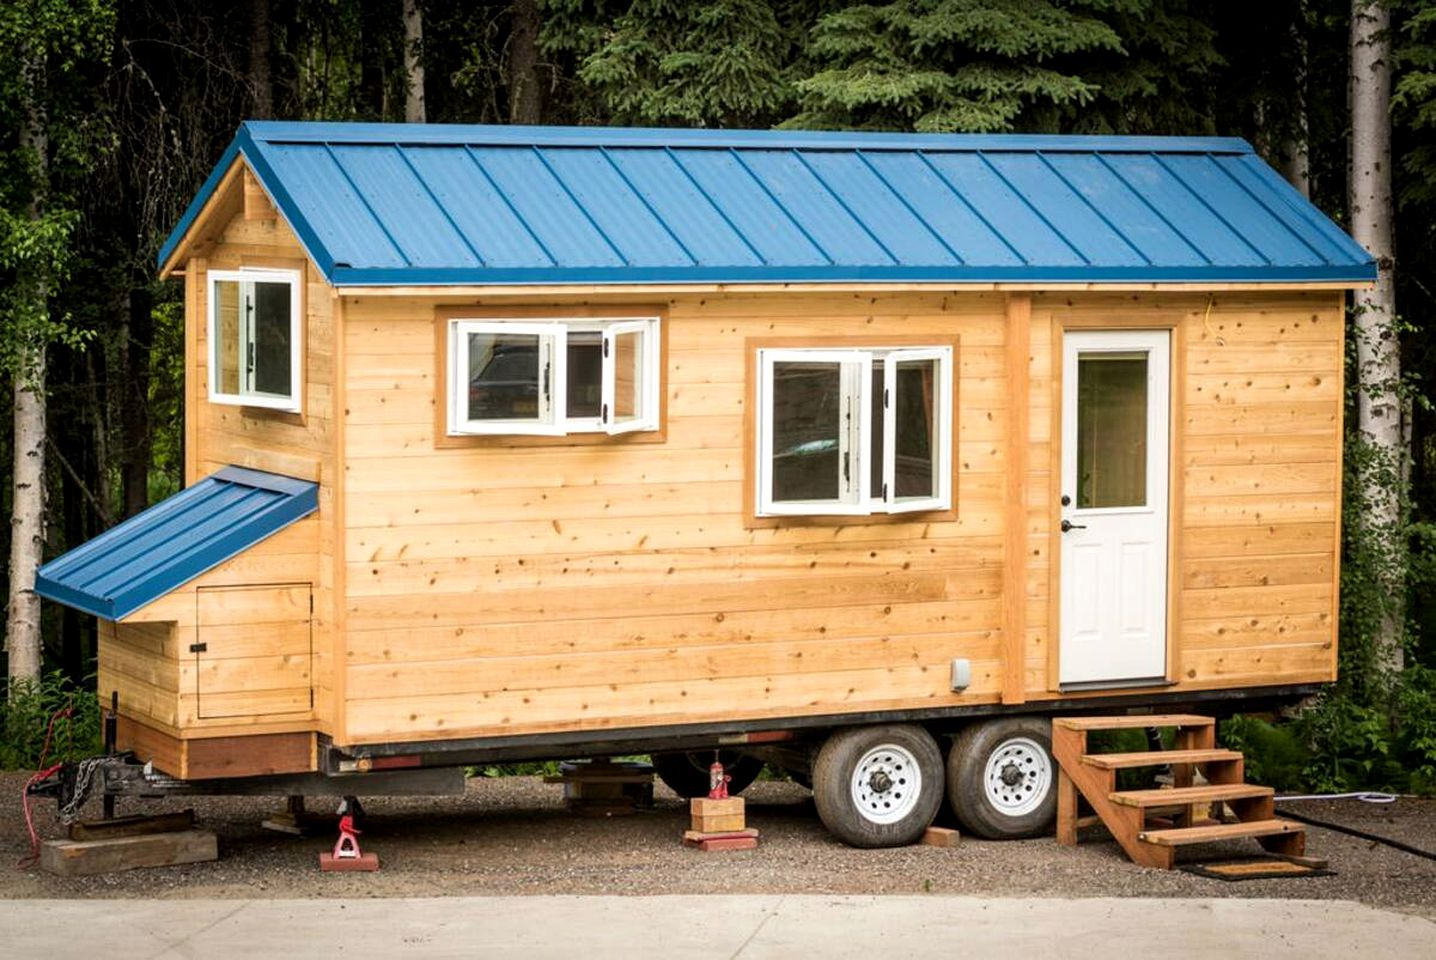 This tiny house rental is ideal for glamping in Alaska